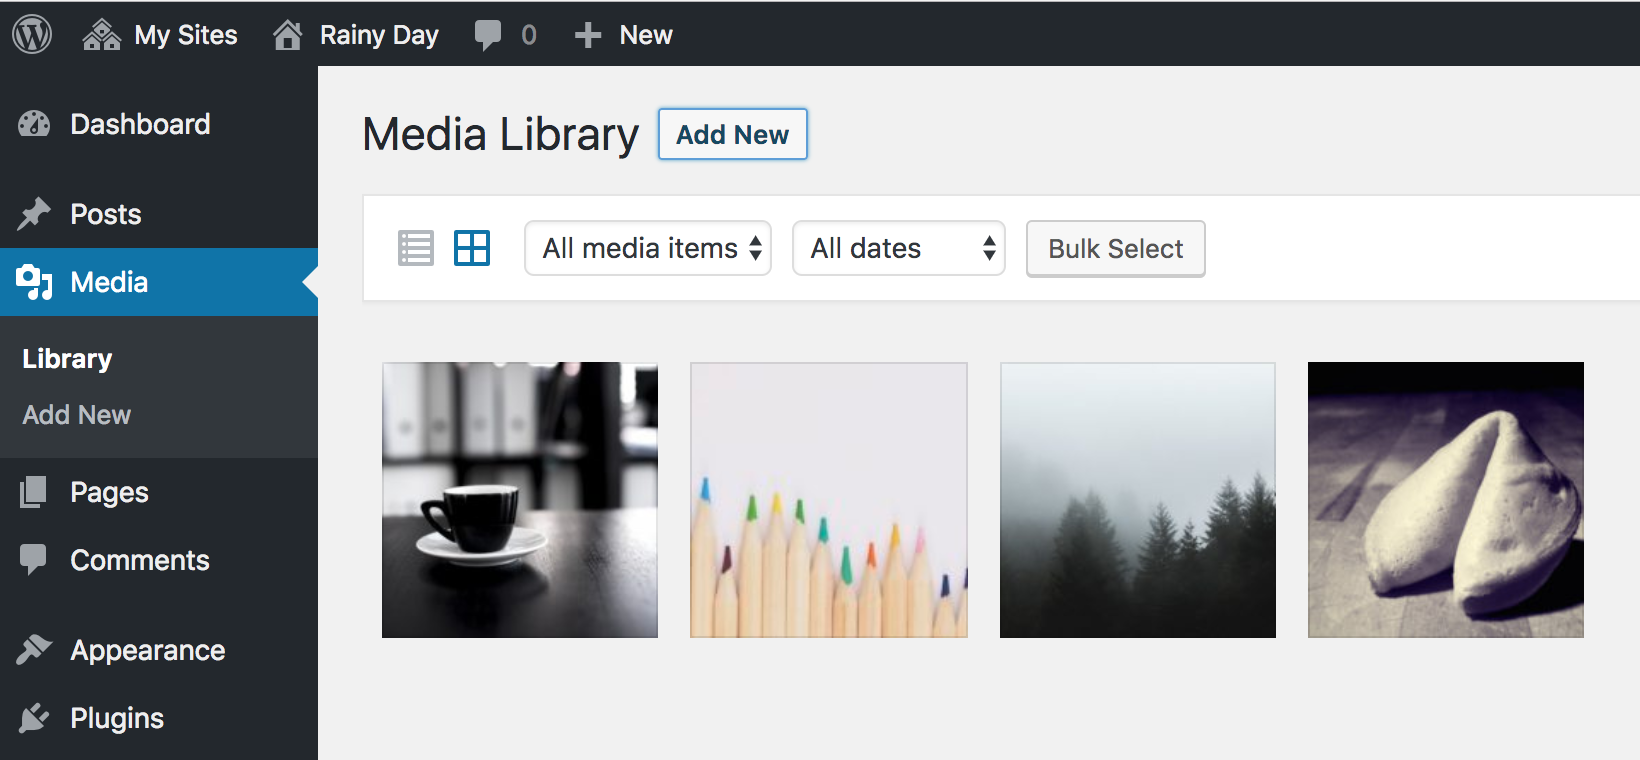 New Network Media Library Plugin Creates a Shared Library on a Multisite Network – WP Tavern